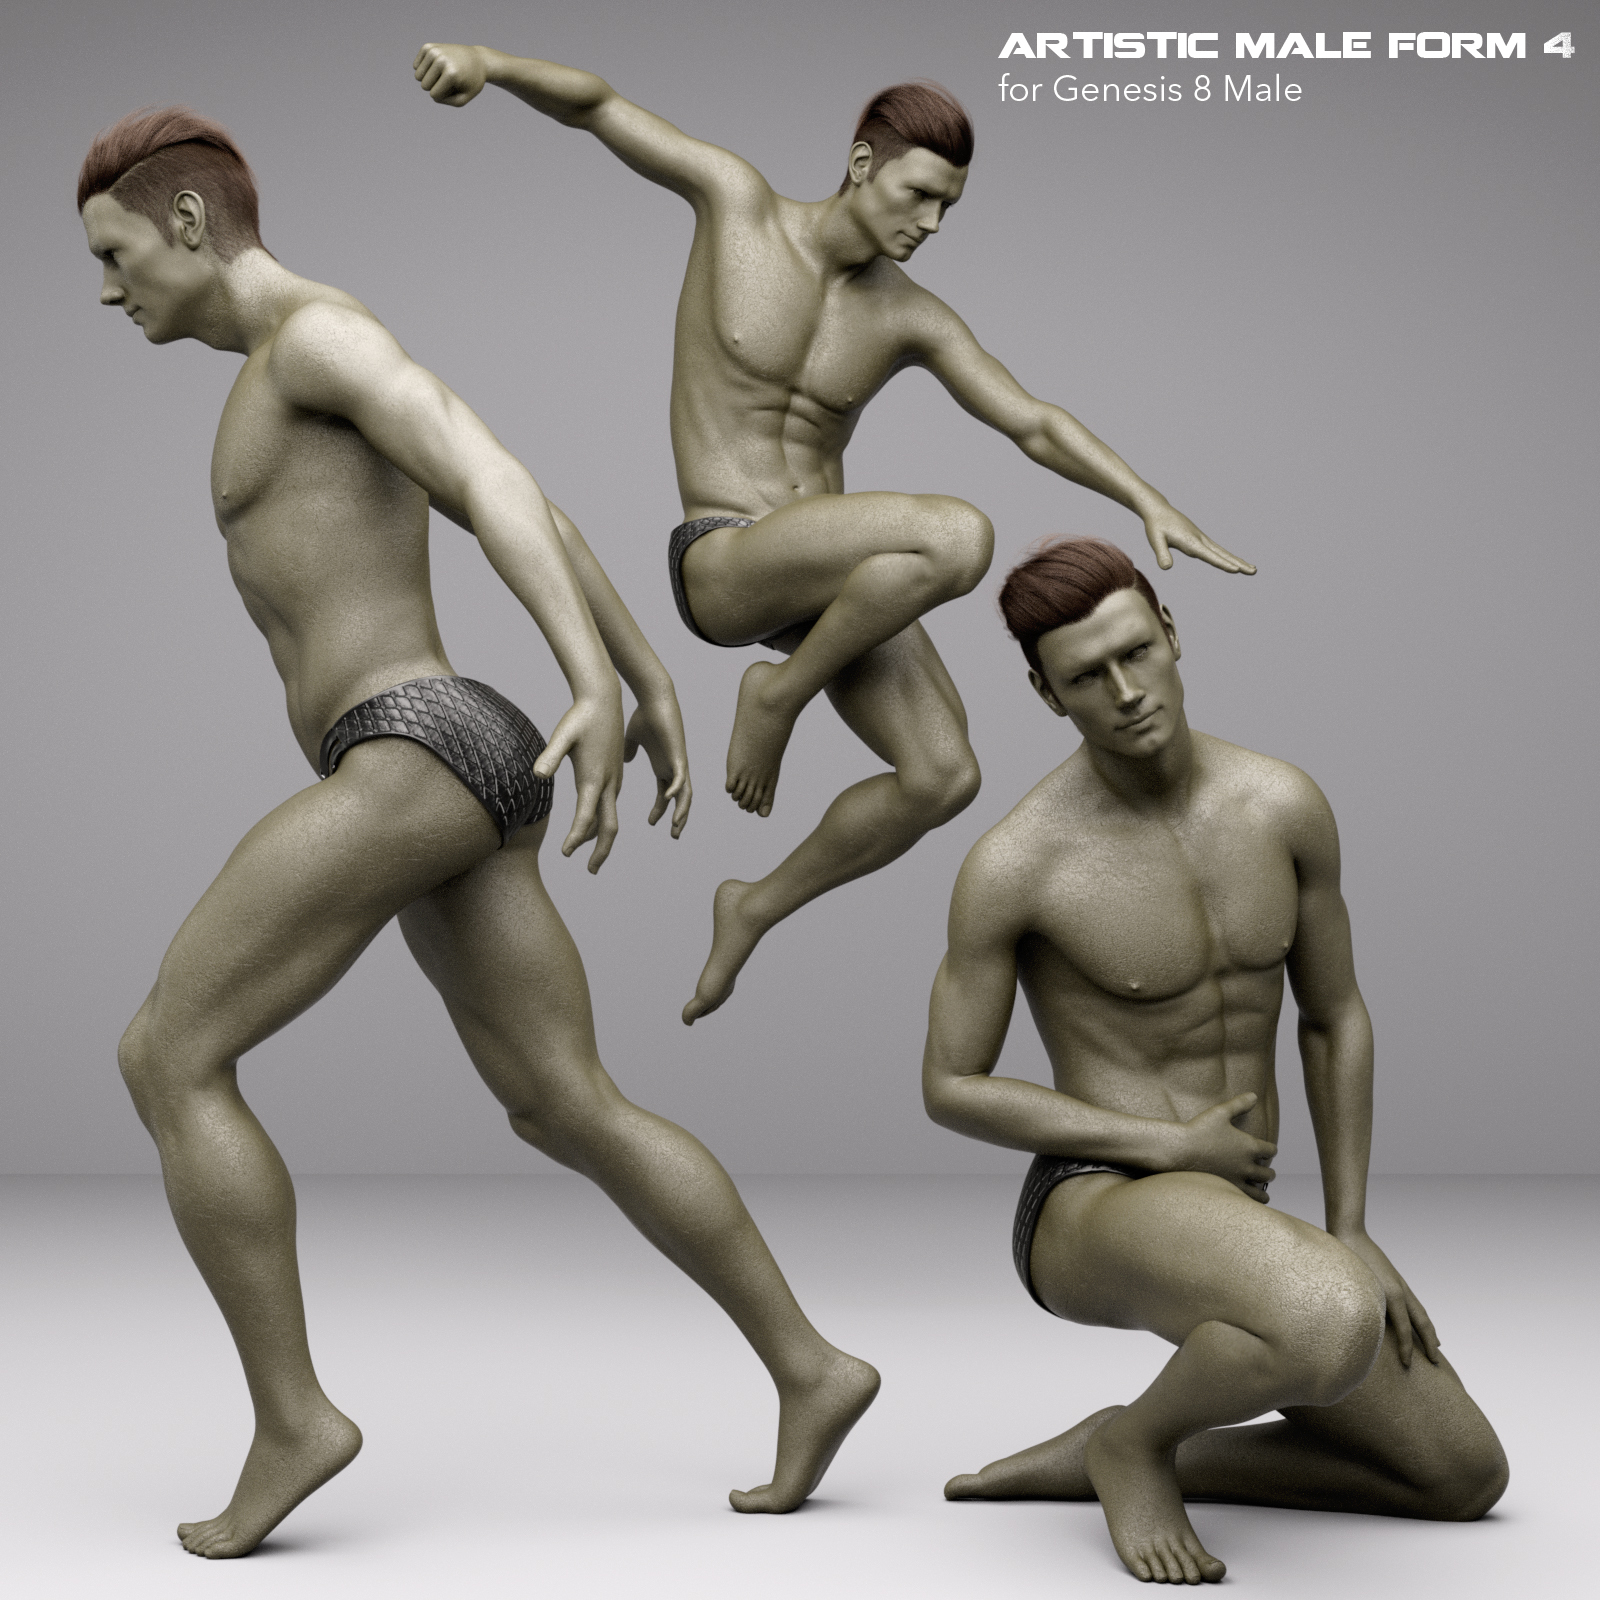 Artistic Male Form 4 for Genesis 8 Male